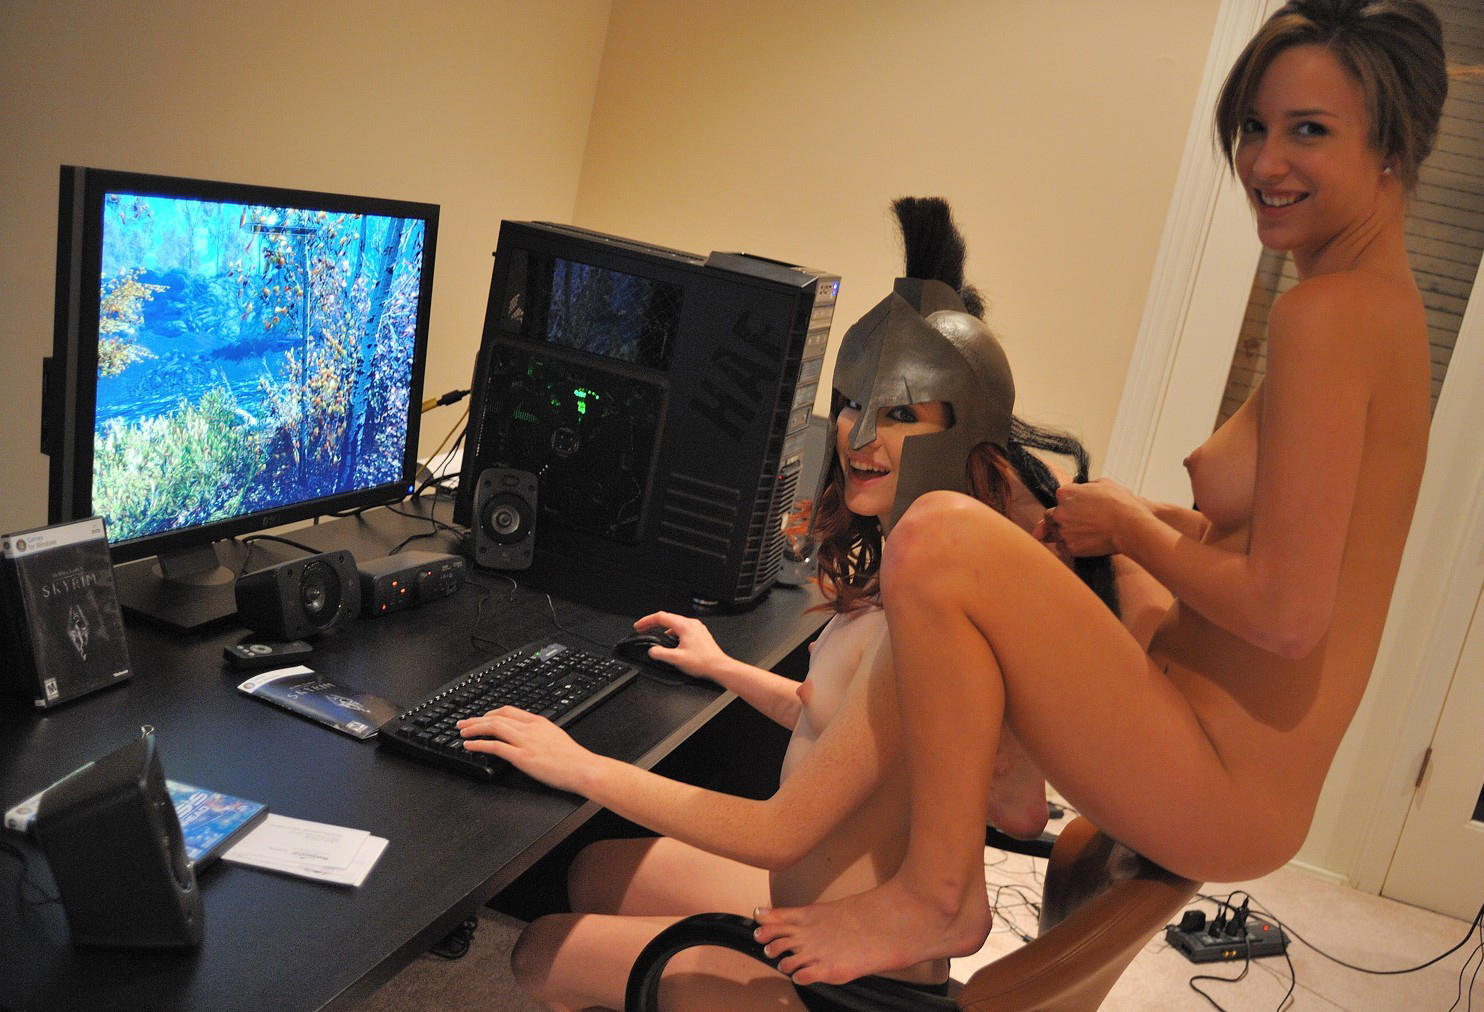 Nude gamer pics sexy famous sexgirl